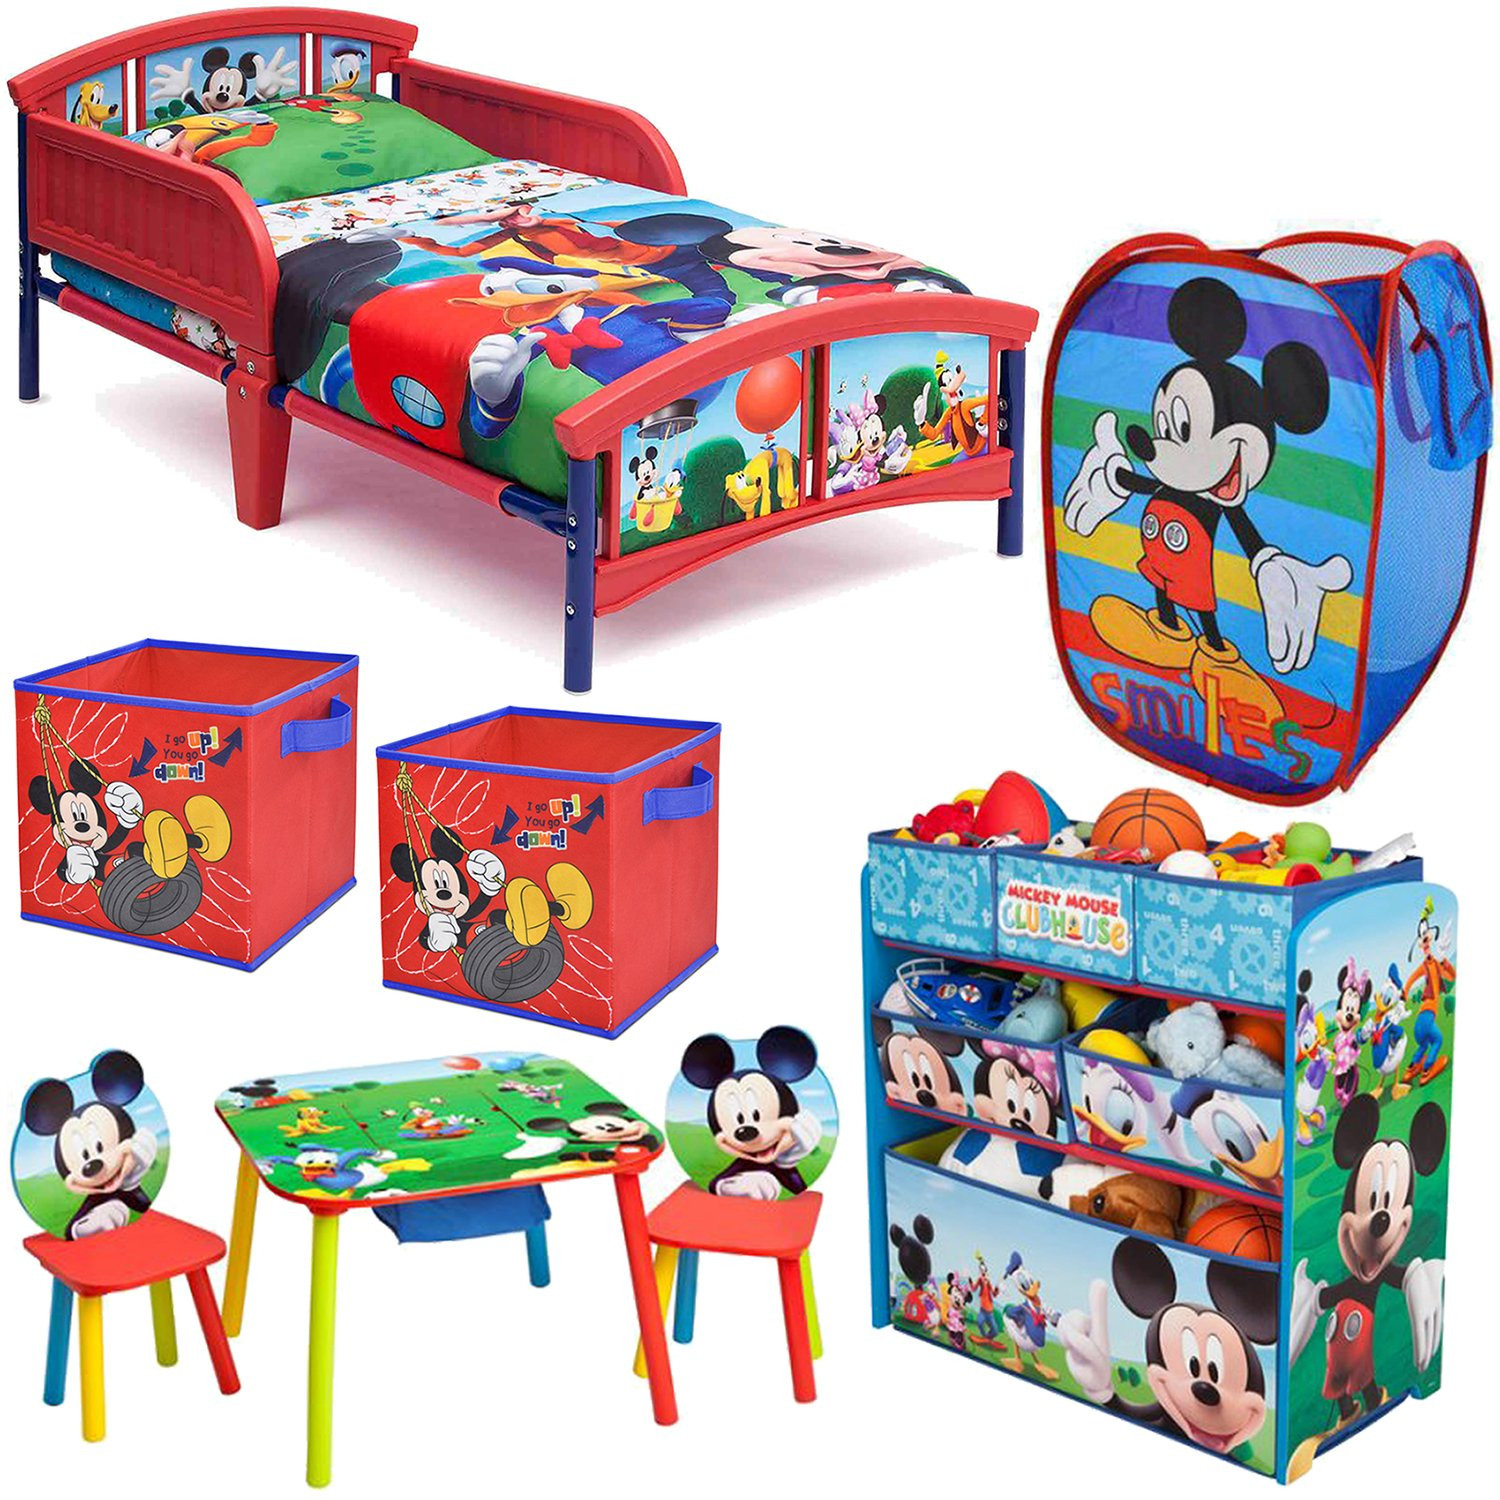 Amazon Disney Delta Children Mickey Mouse Clubhouse 8 Piece Furniture Set